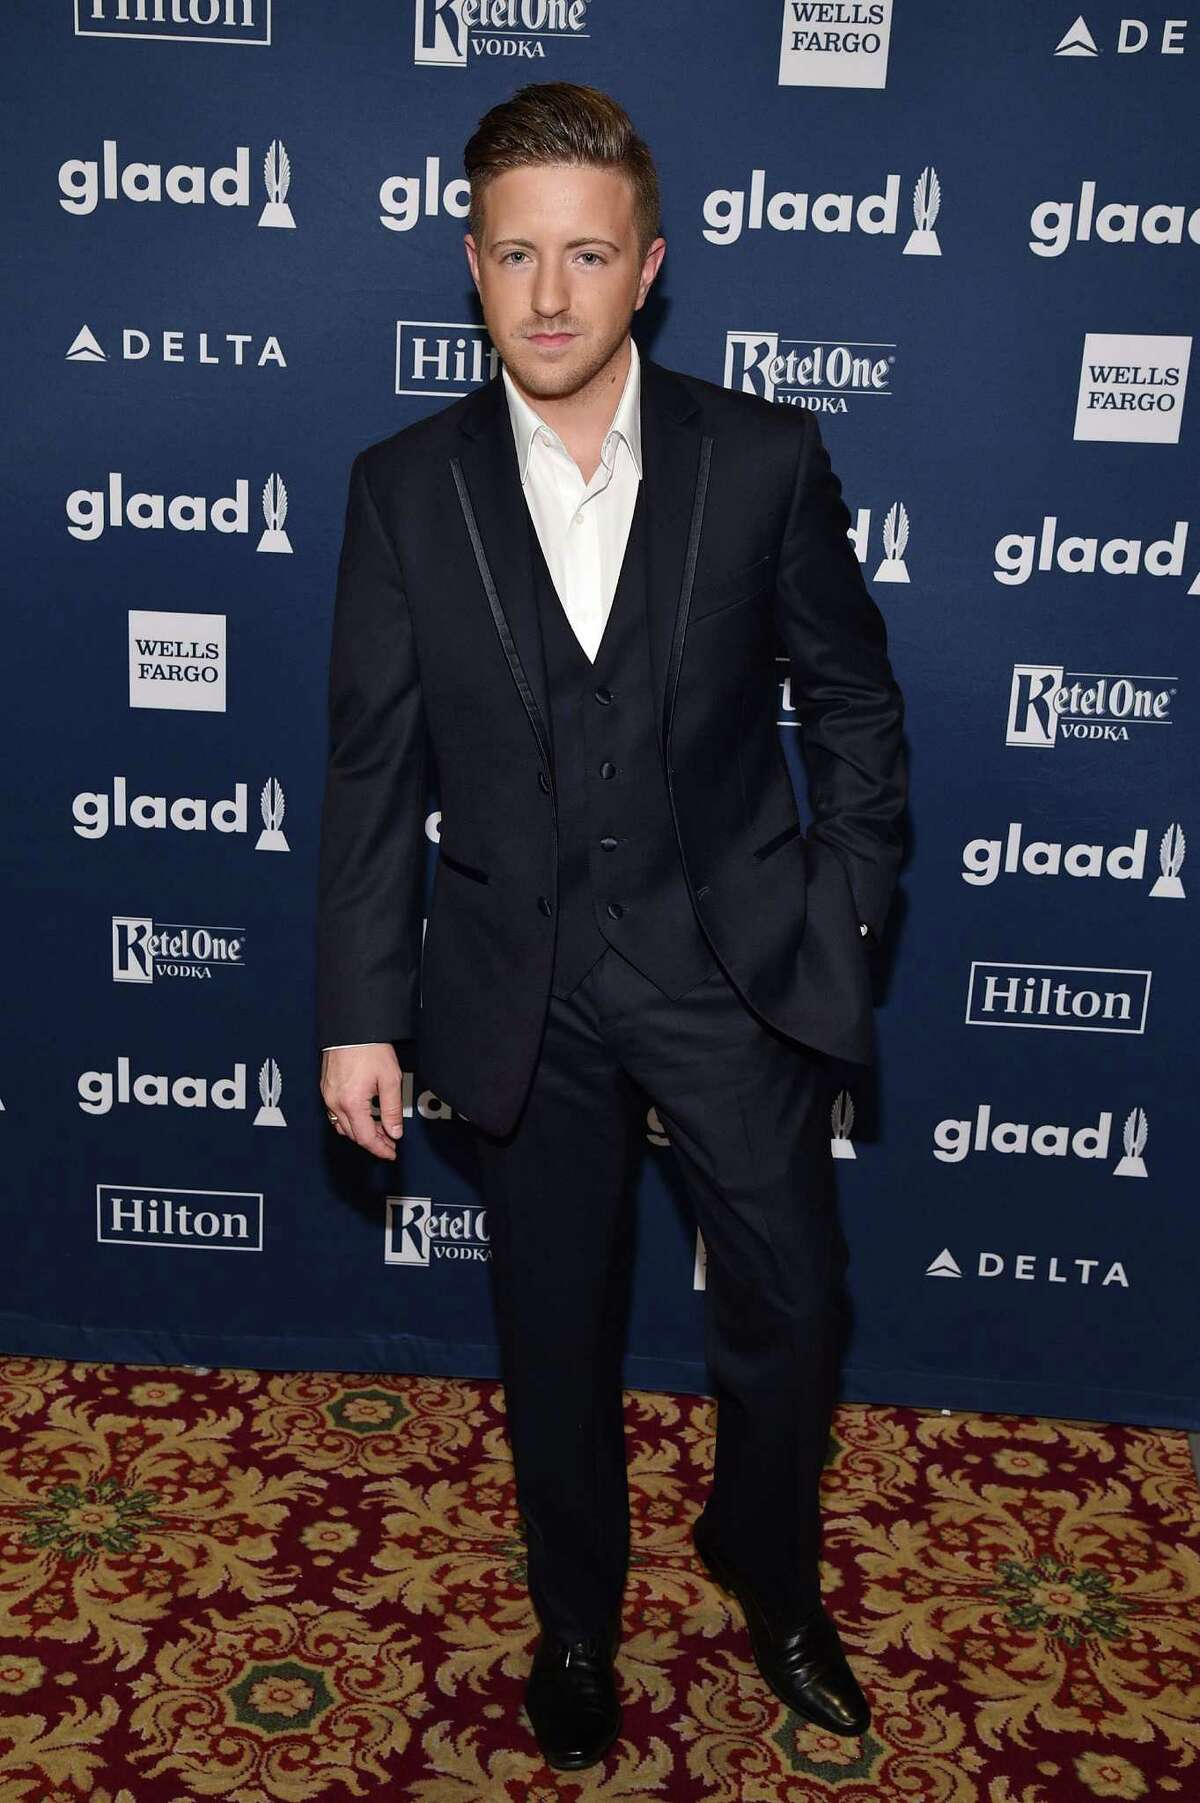 NEW YORK, NY - MAY 14: Musician Billy Gillman attends the 27th Annual GLAAD Media Awards in New York on May 14, 2016 in New York City.